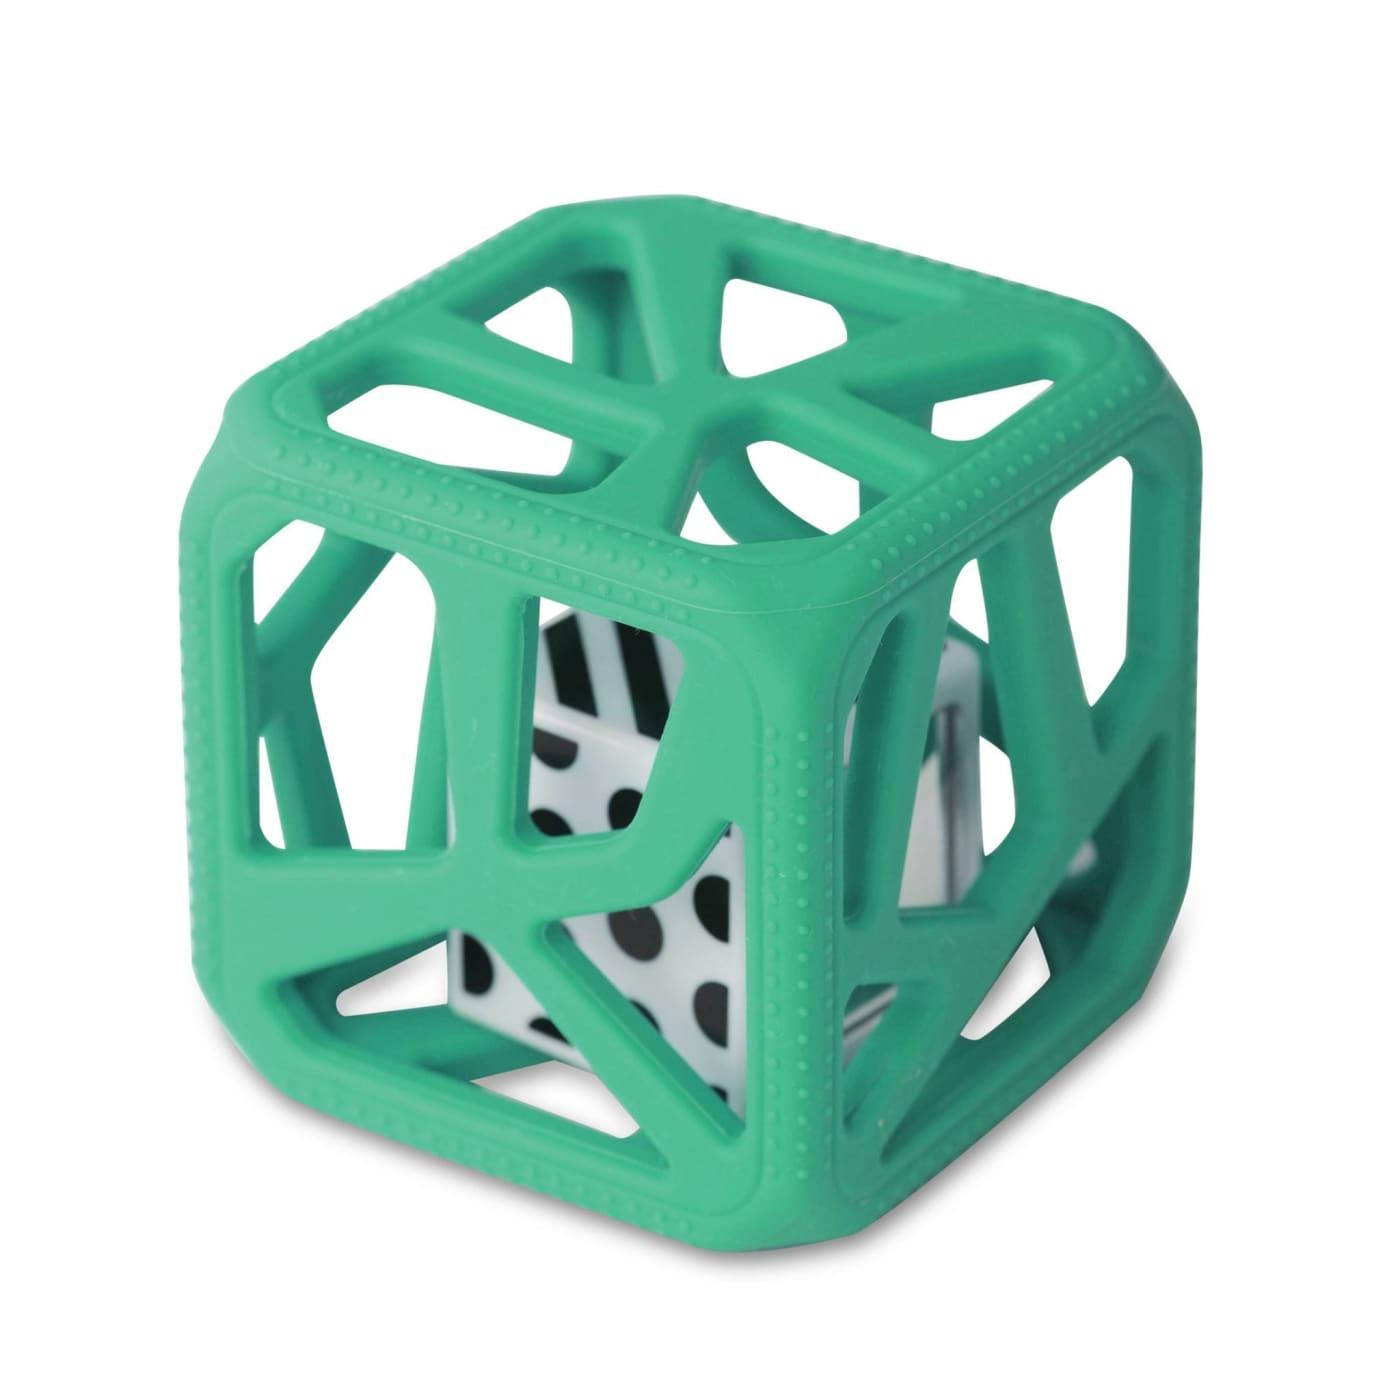 Malarkey Kids Chew Cube - Turquoise - NURSING & FEEDING - TEETHERS/TEETHING JEWELLERY